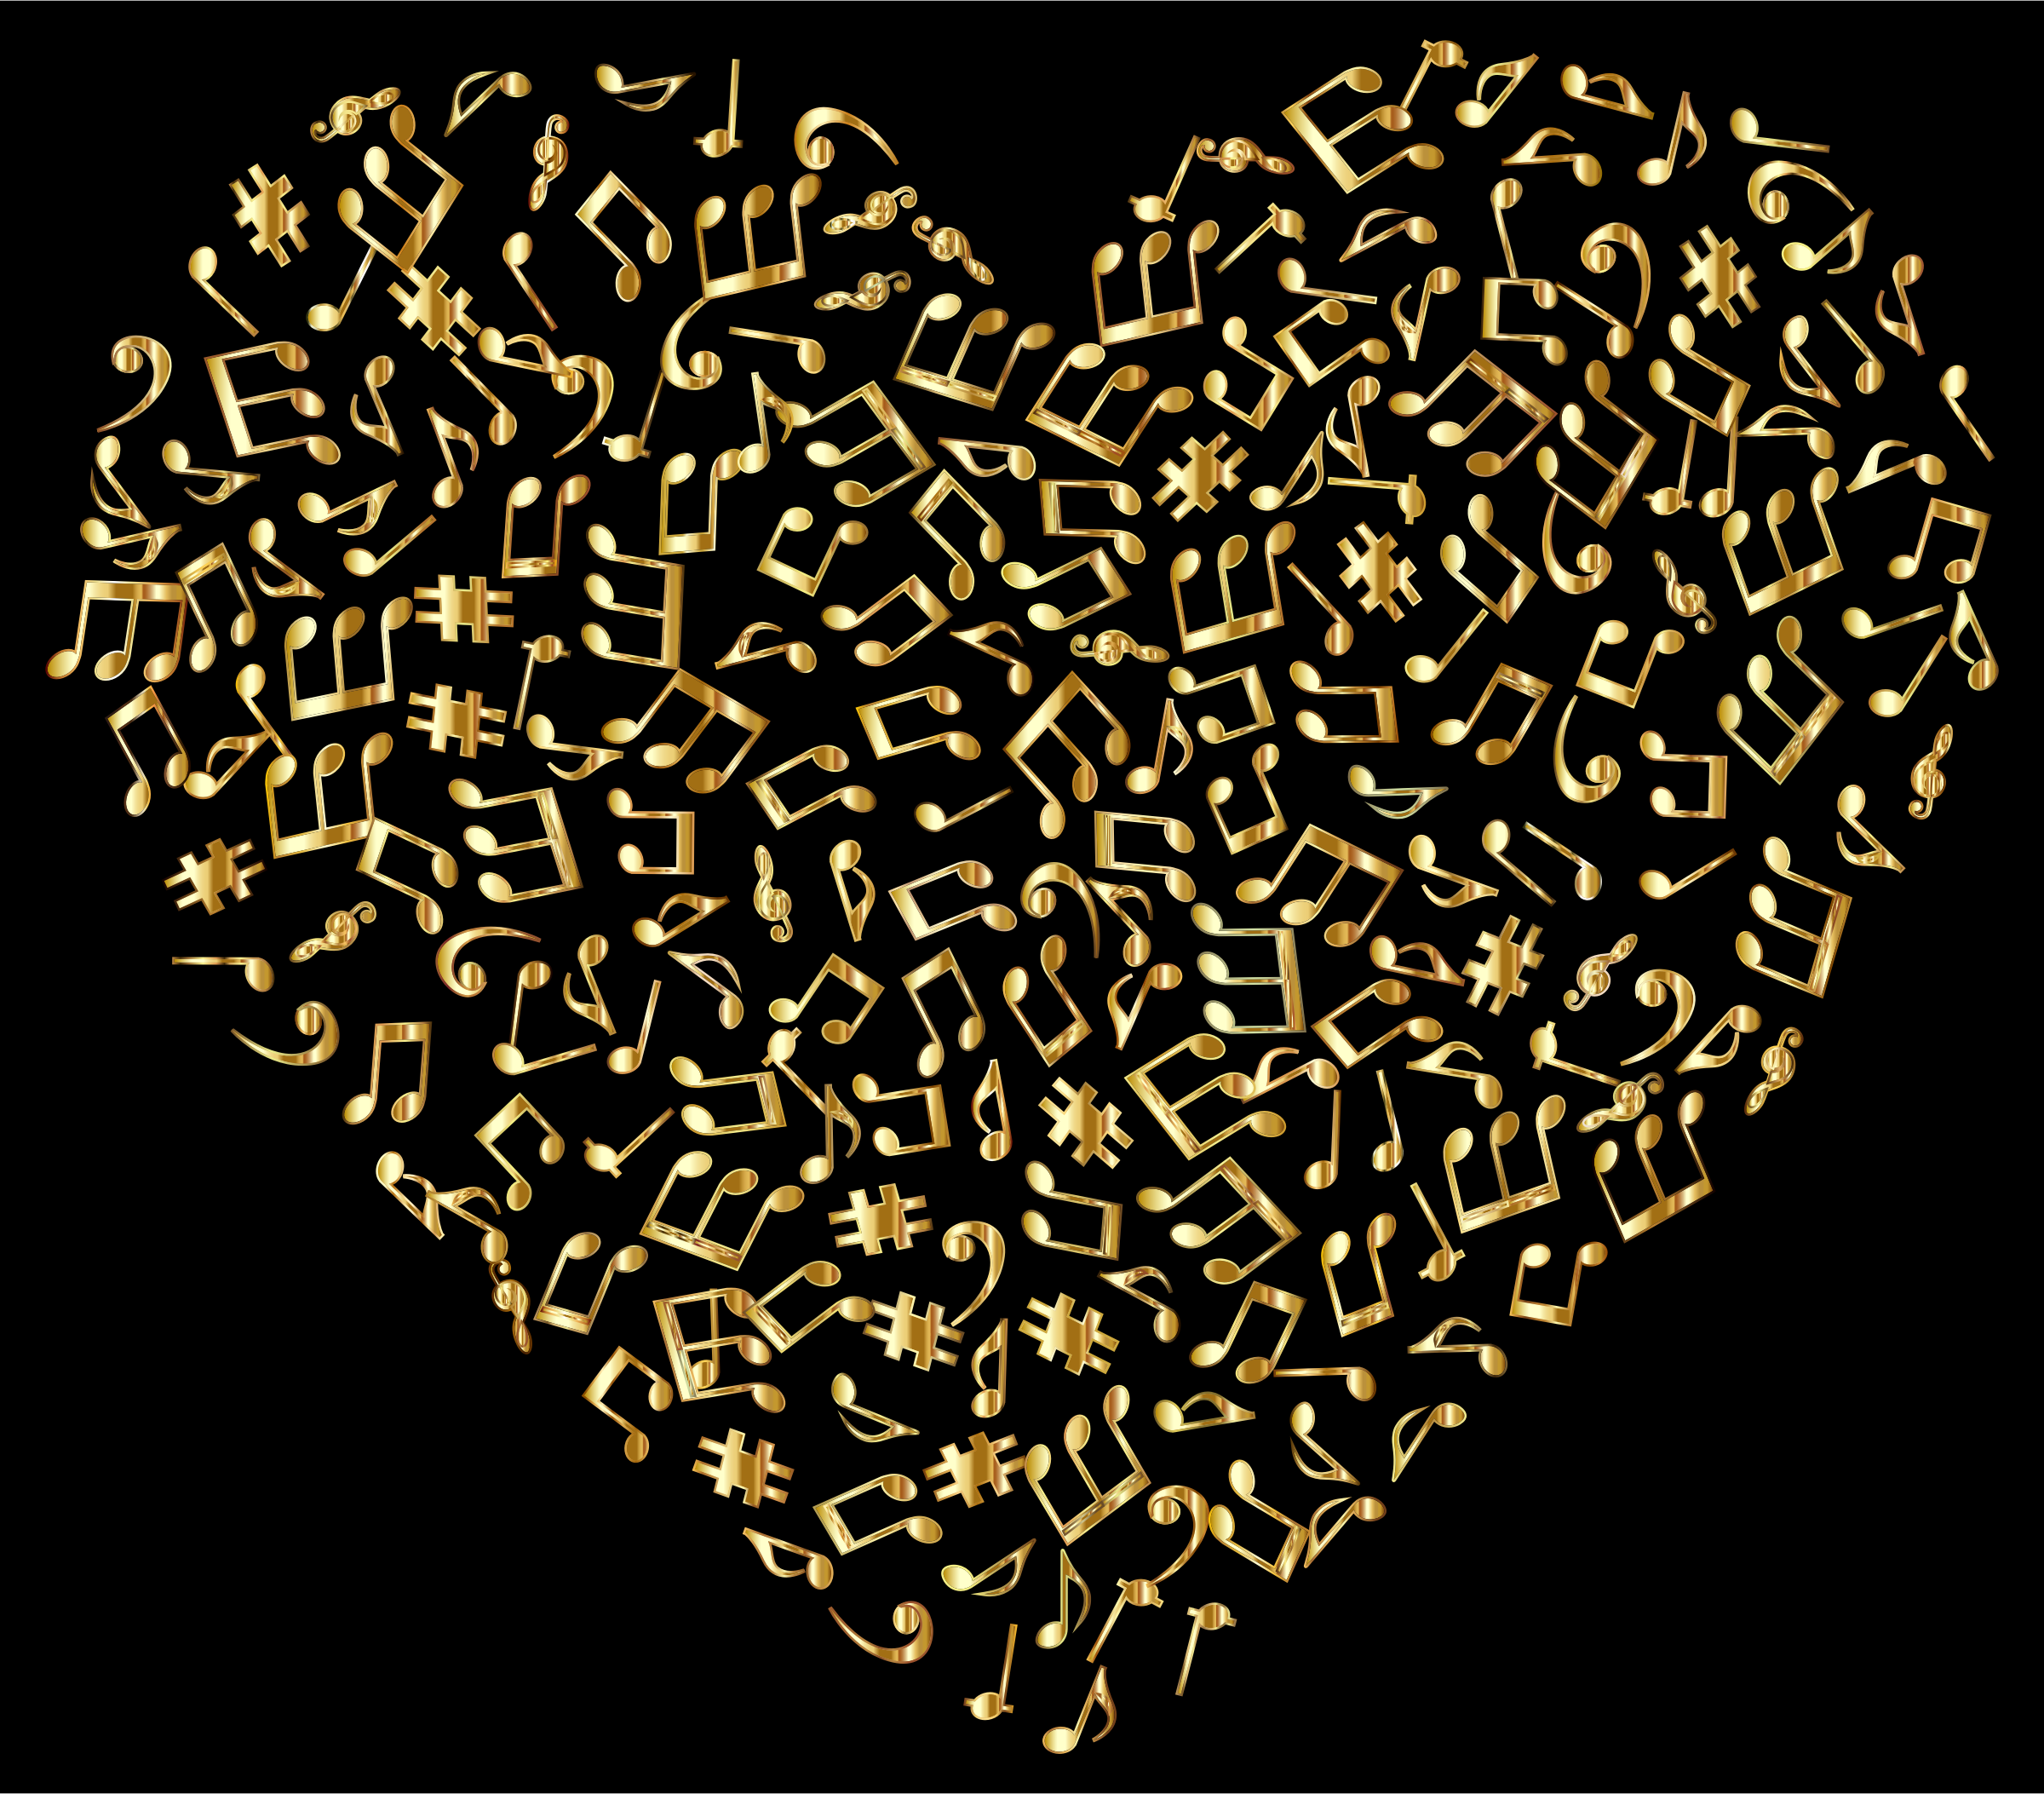 Gold Musical Heart 4 by GDJ